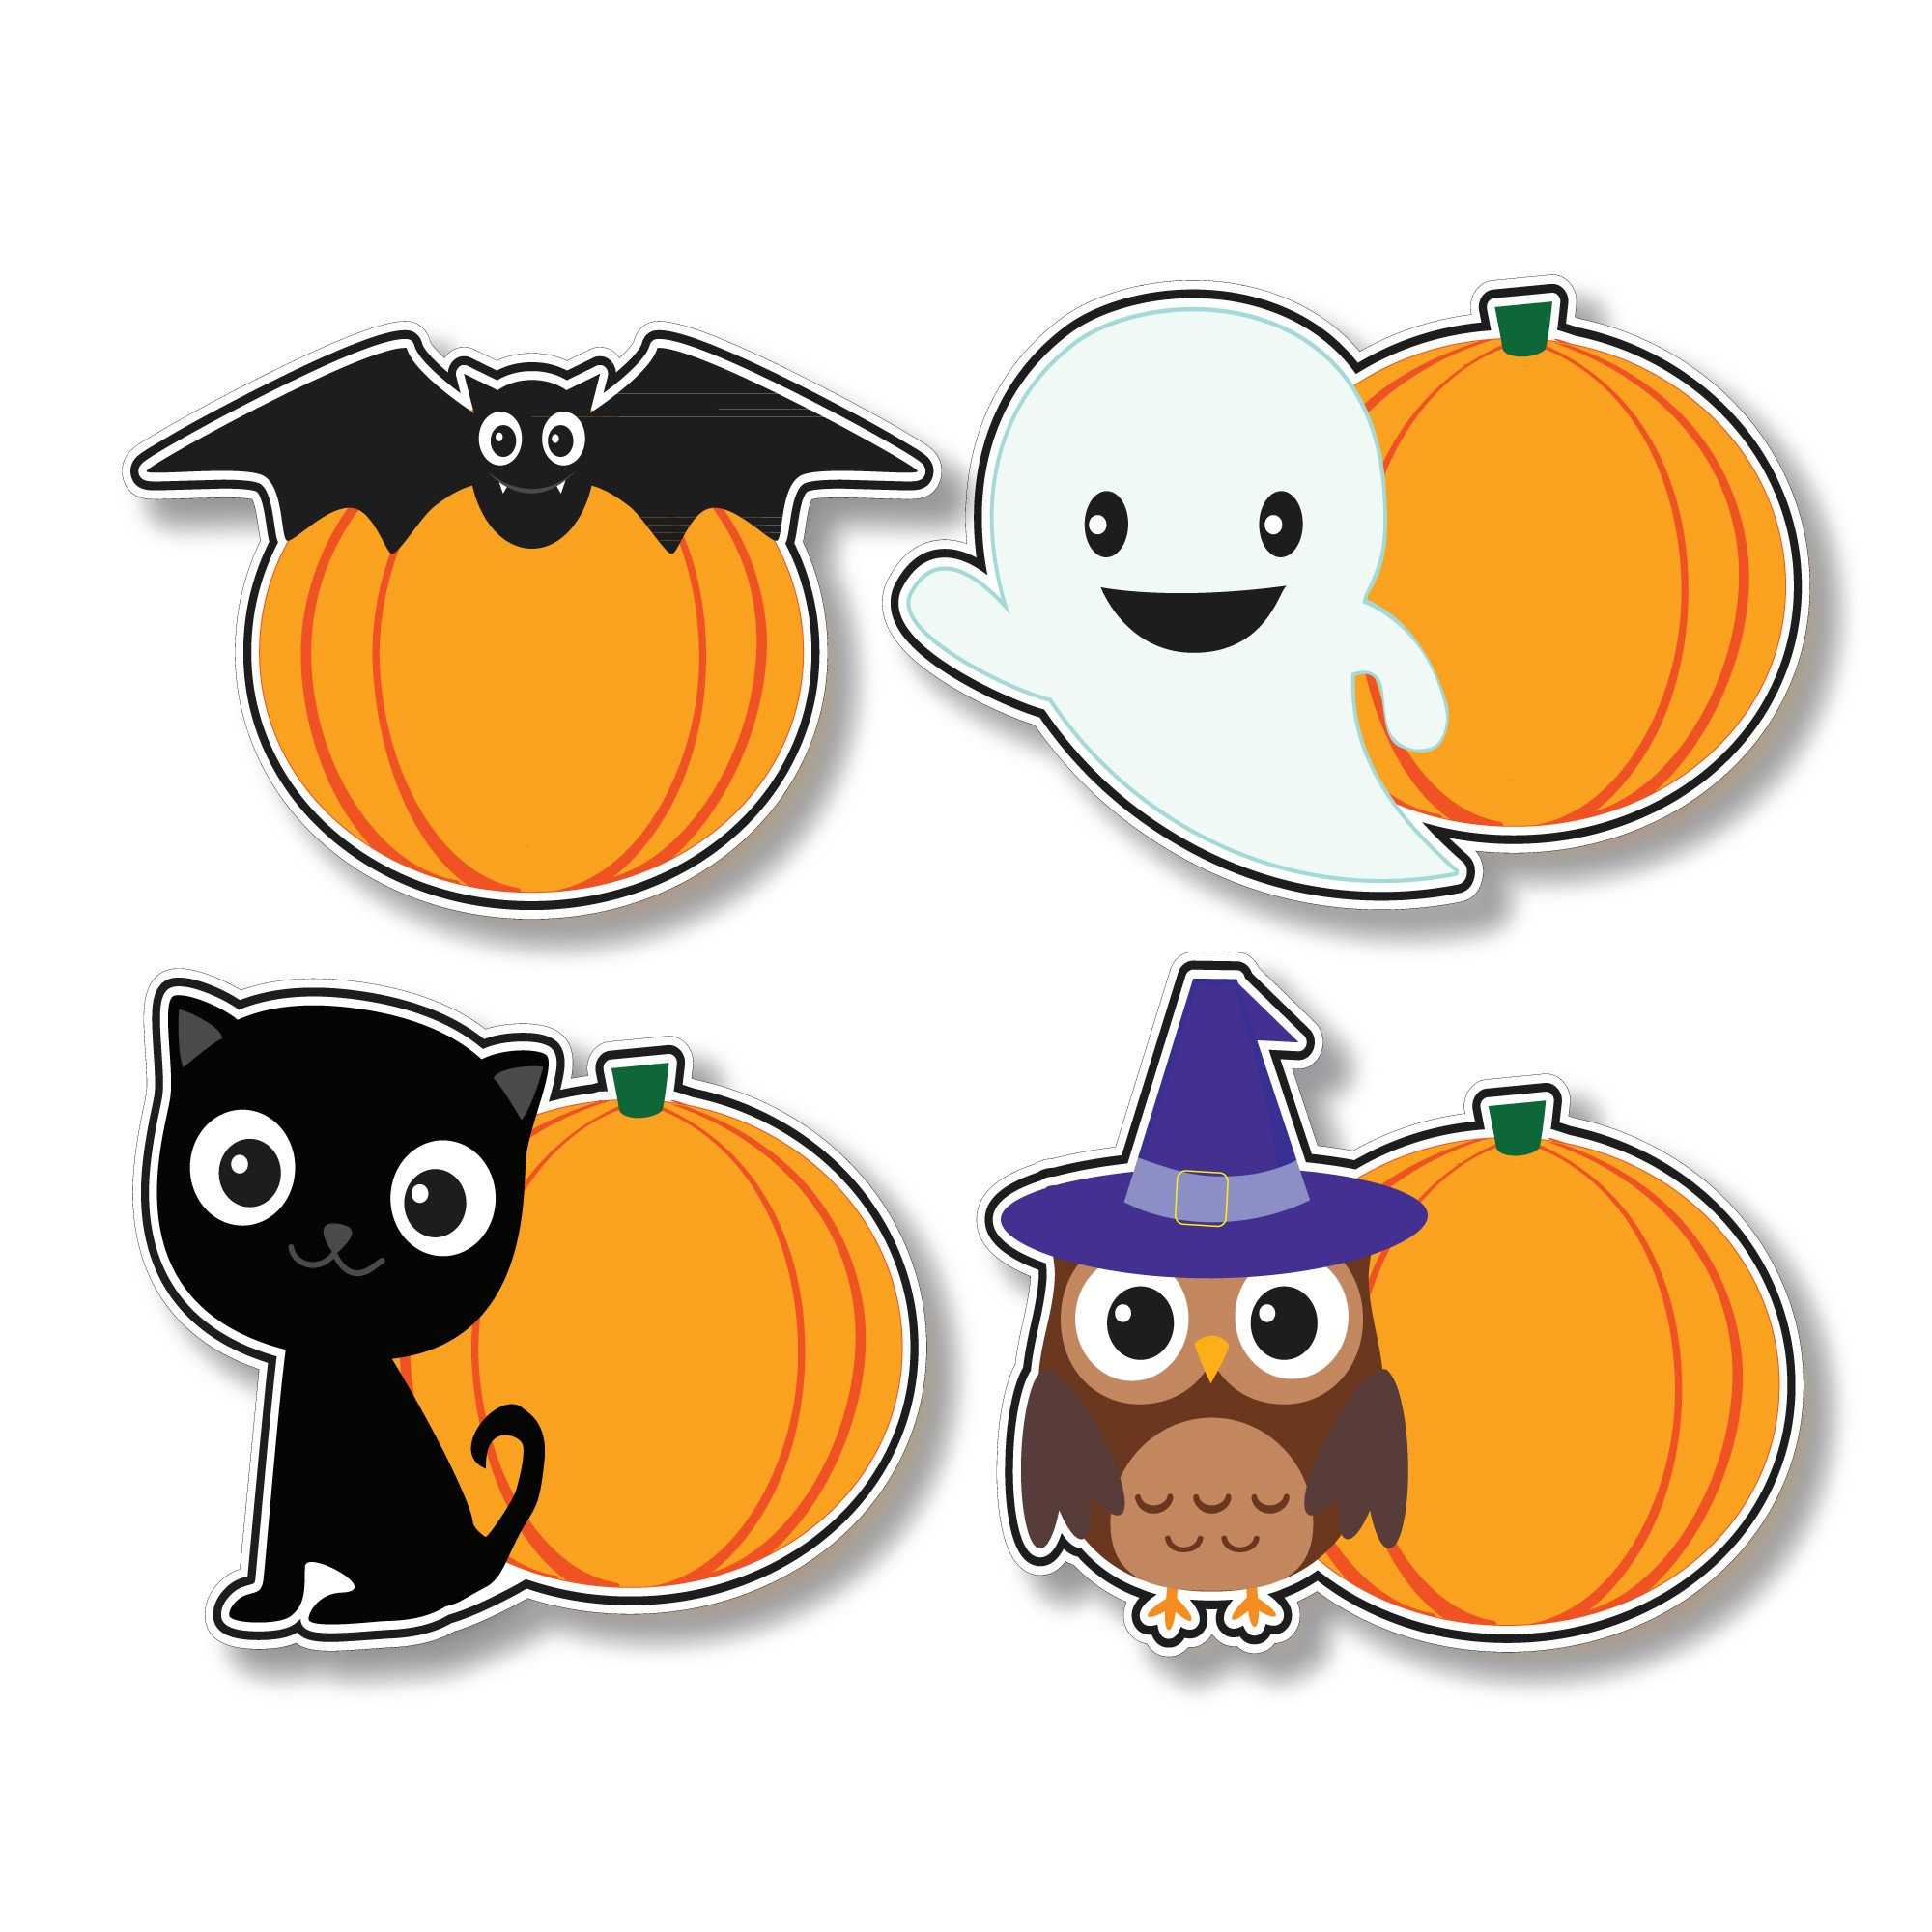 hllnfun trrs halloween fun stickies friendly terrors lovable - Halloween Fun Images